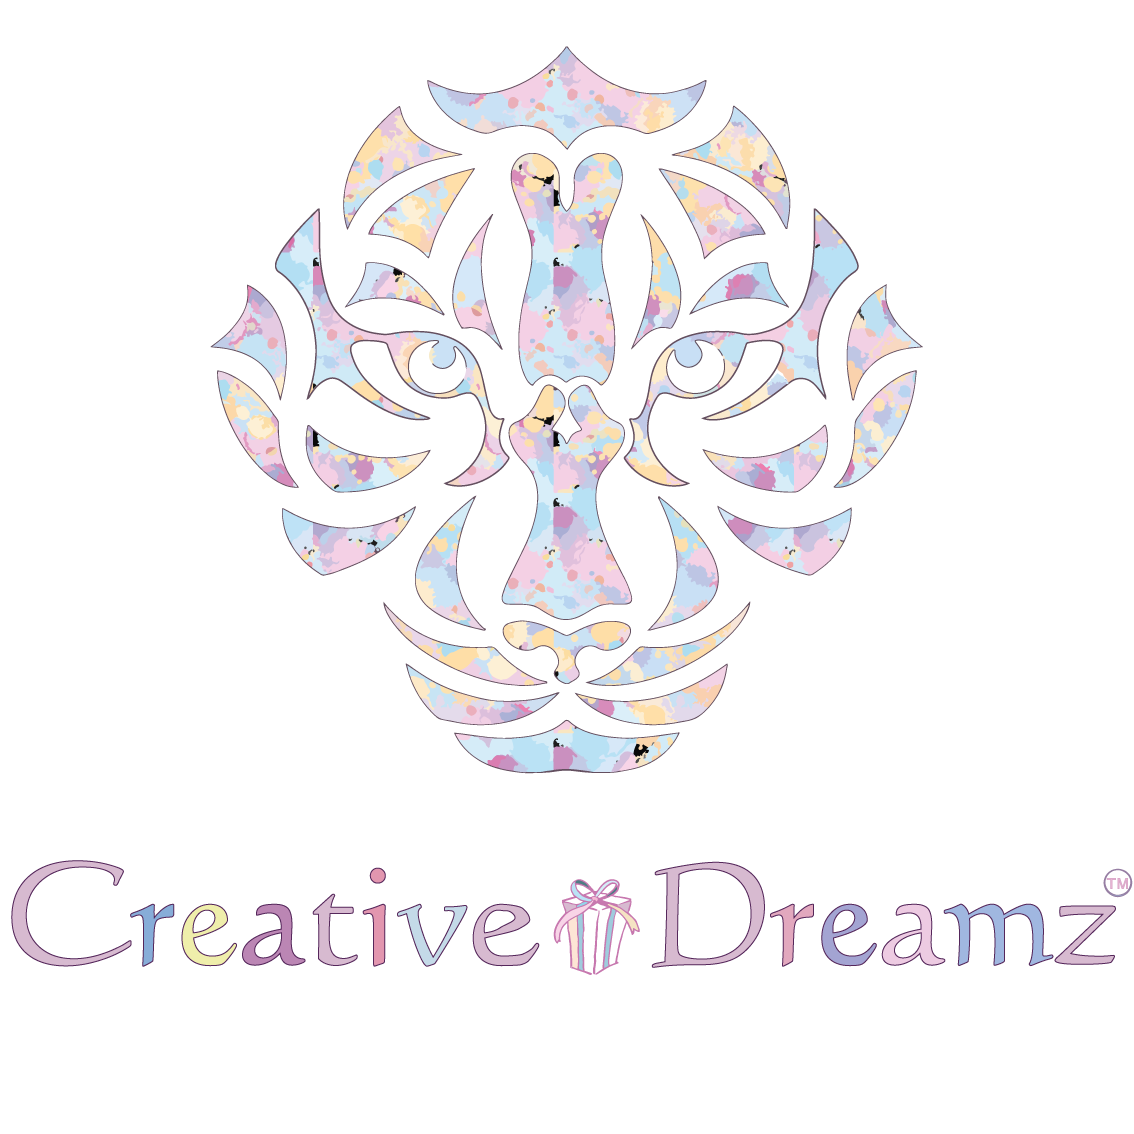 creative_dreams_master_logo_transparent.png